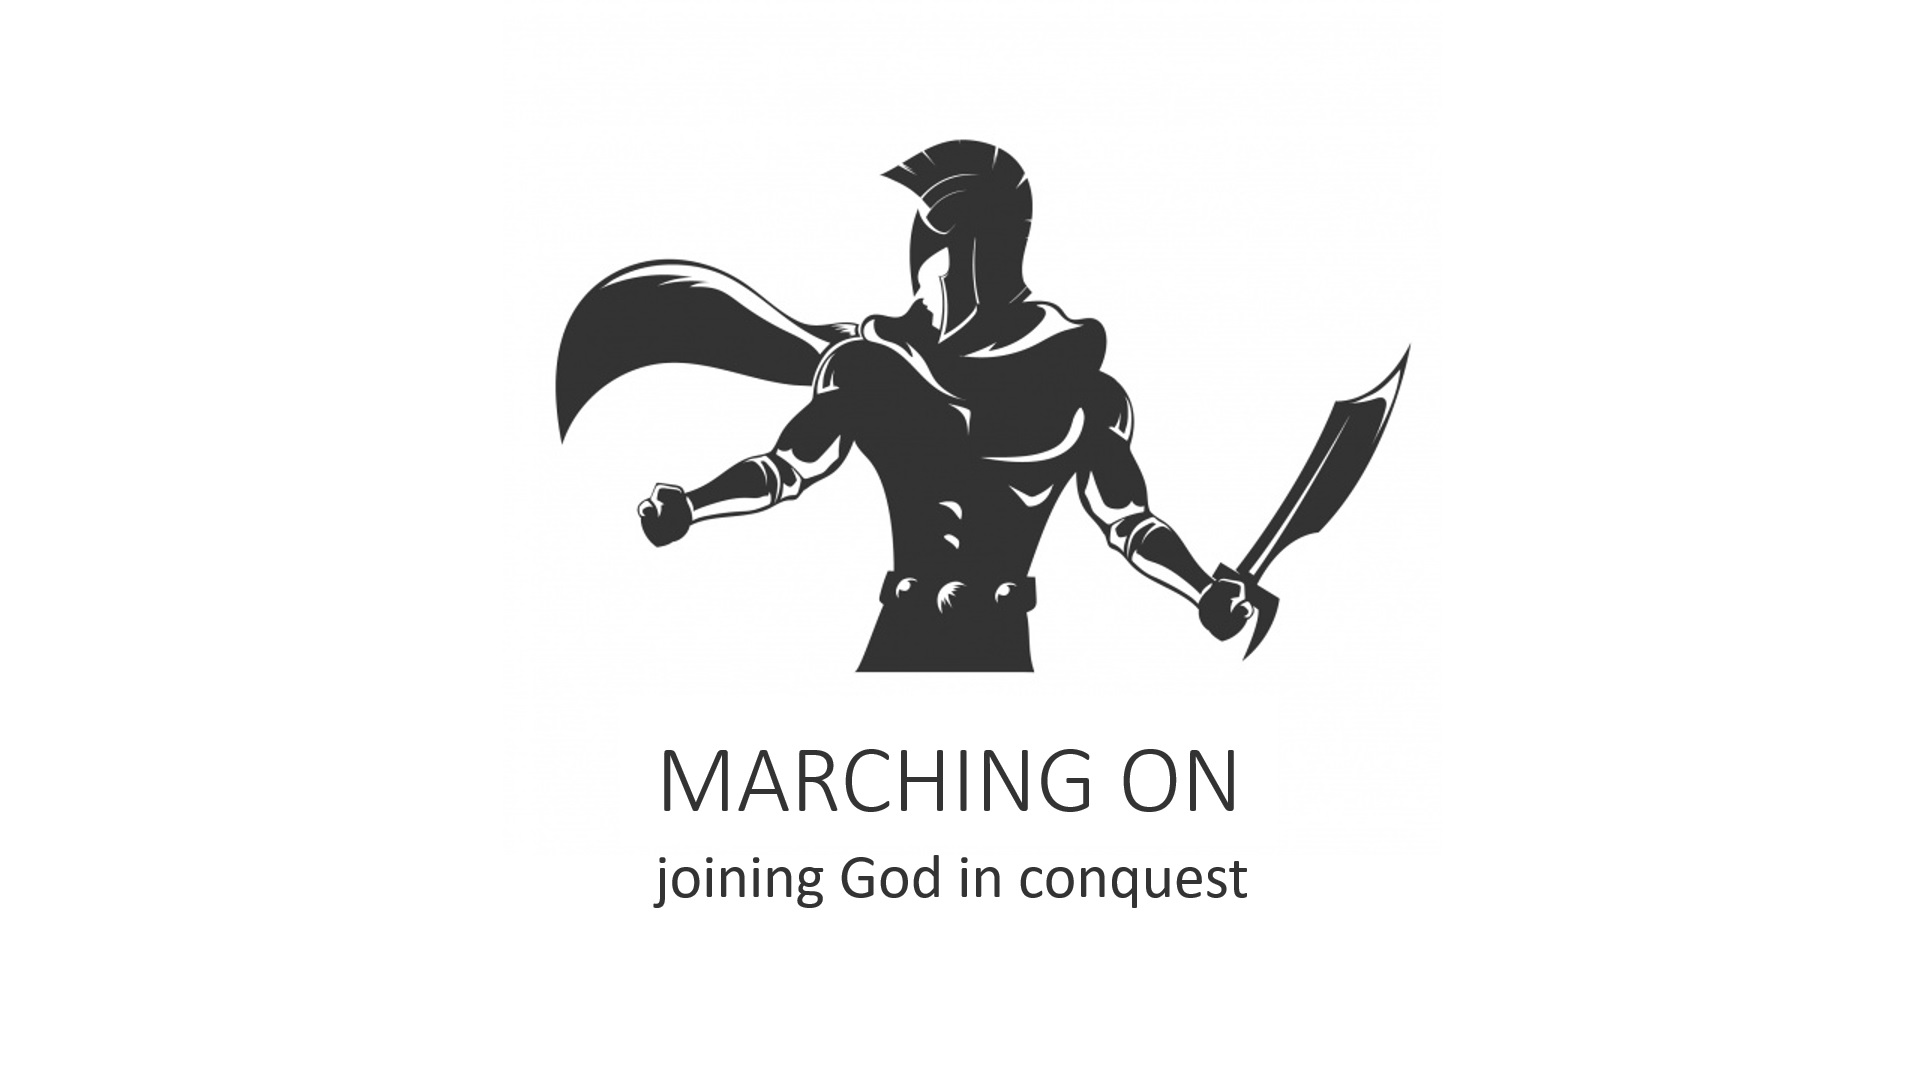 Marching on – joining God's restoration